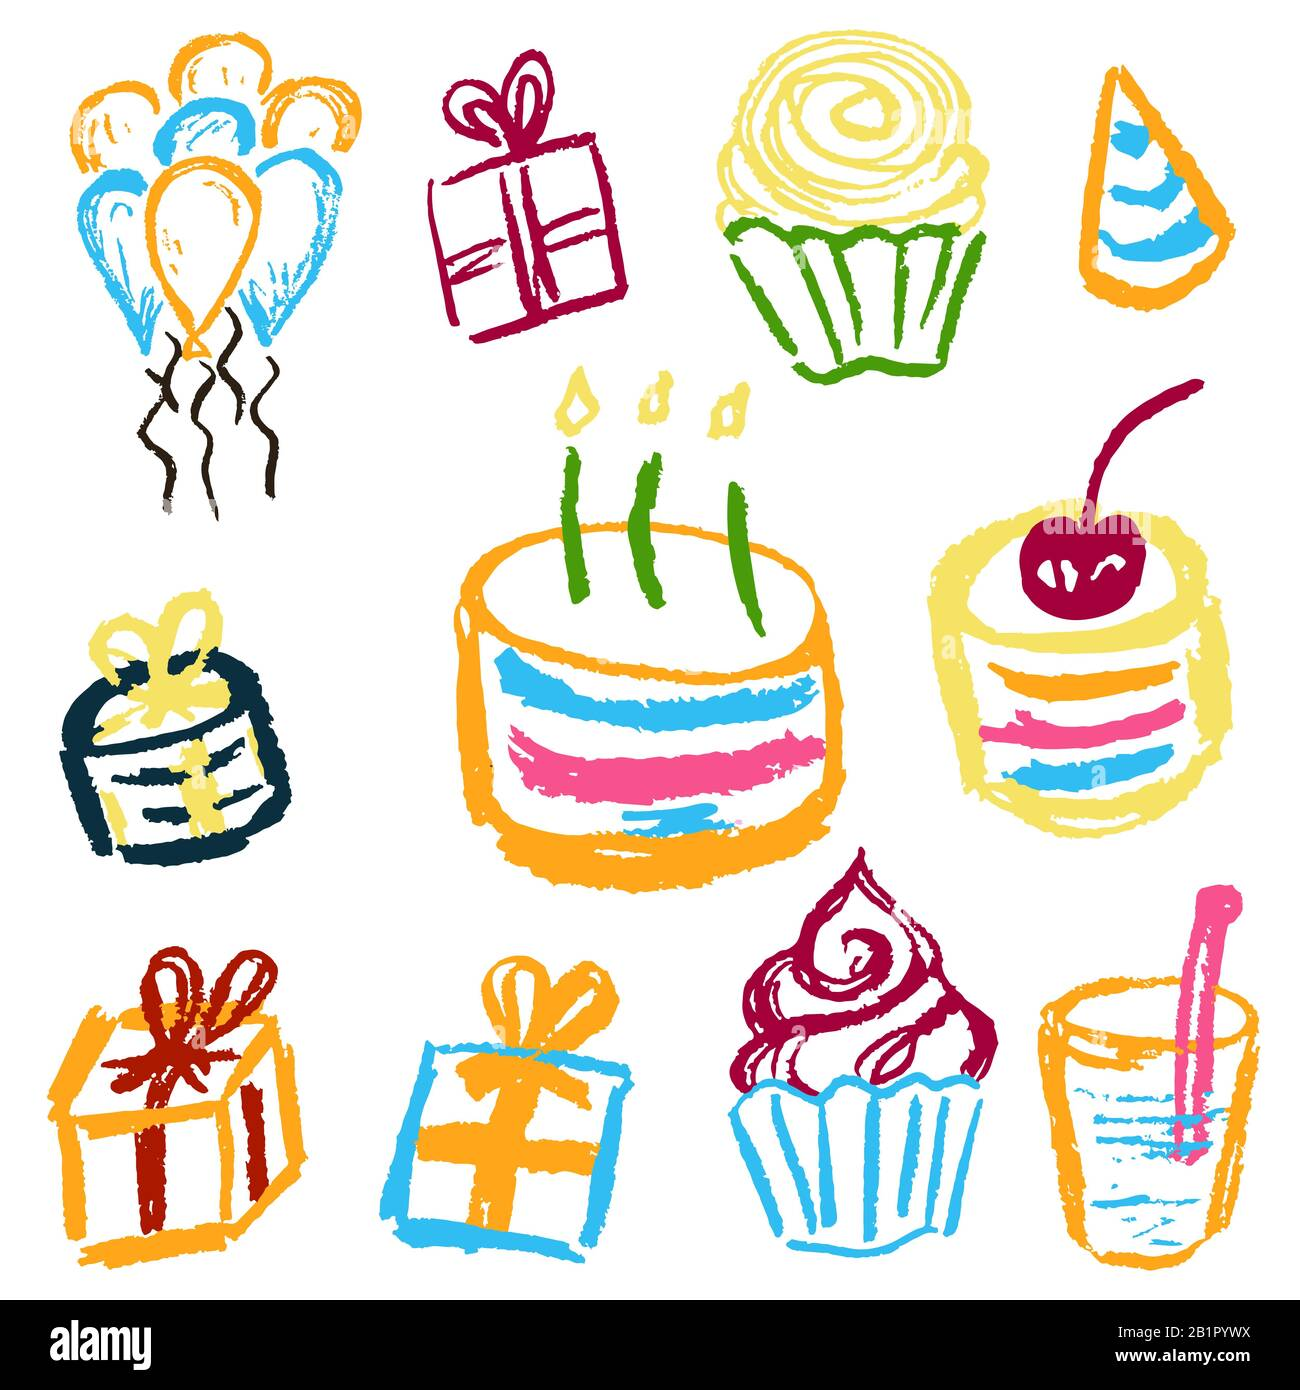 Children S Drawings Elements For The Design Of Postcards Backgrounds Packaging Printing For Clothing Birthday Cake Sweets Balls Gifts Stock Vector Image Art Alamy